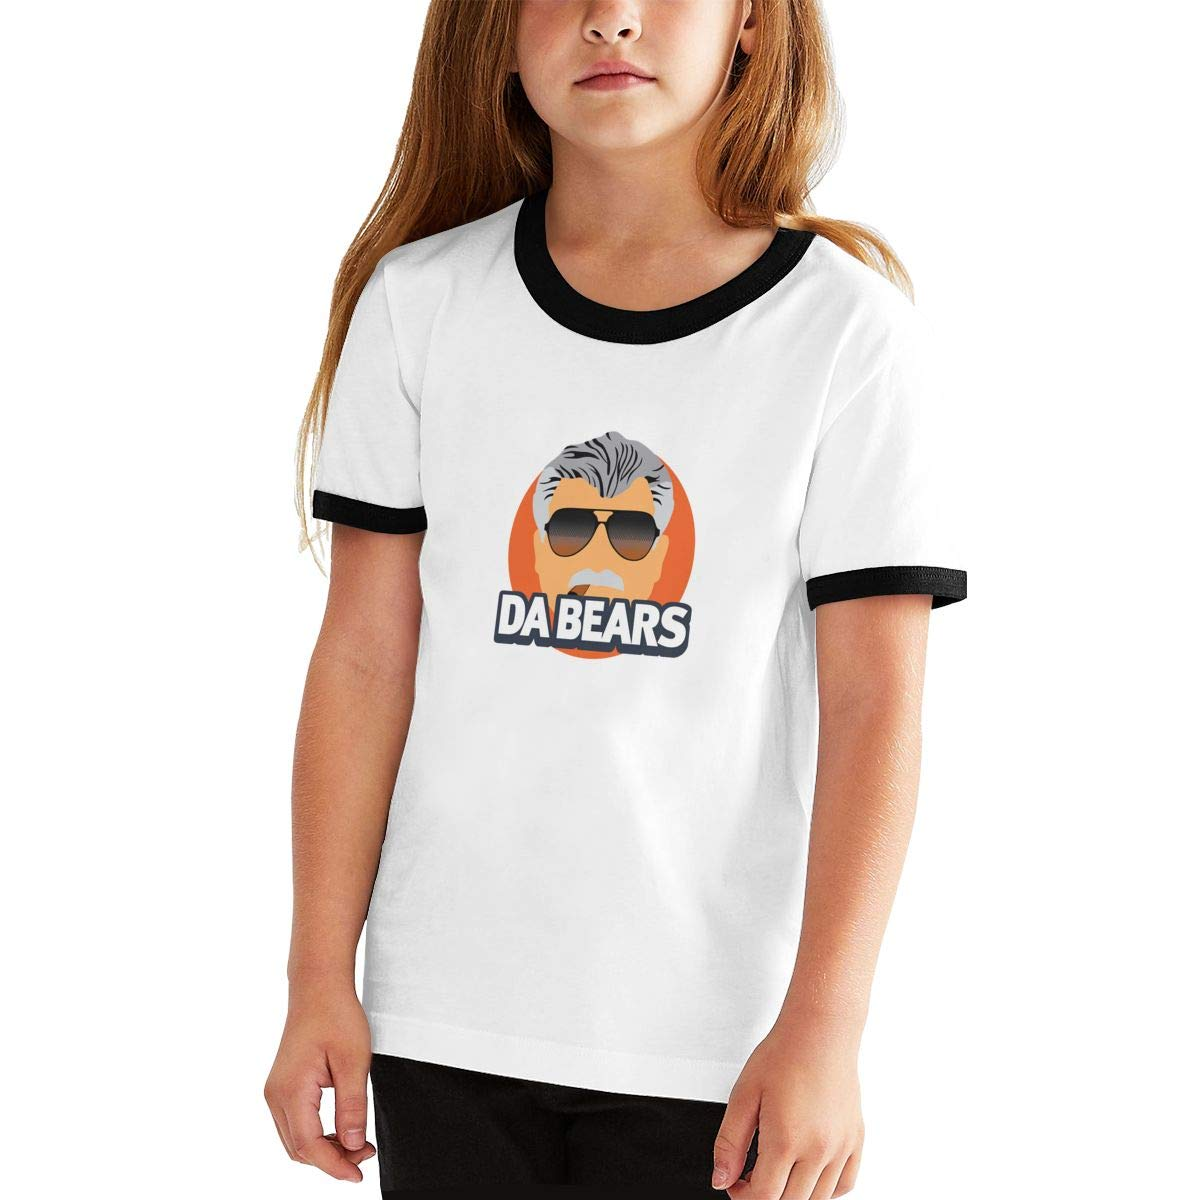 Kids Or Little Boys and Girls Da Bears Ditka Unisex Childrens Short Sleeve T-Shirt